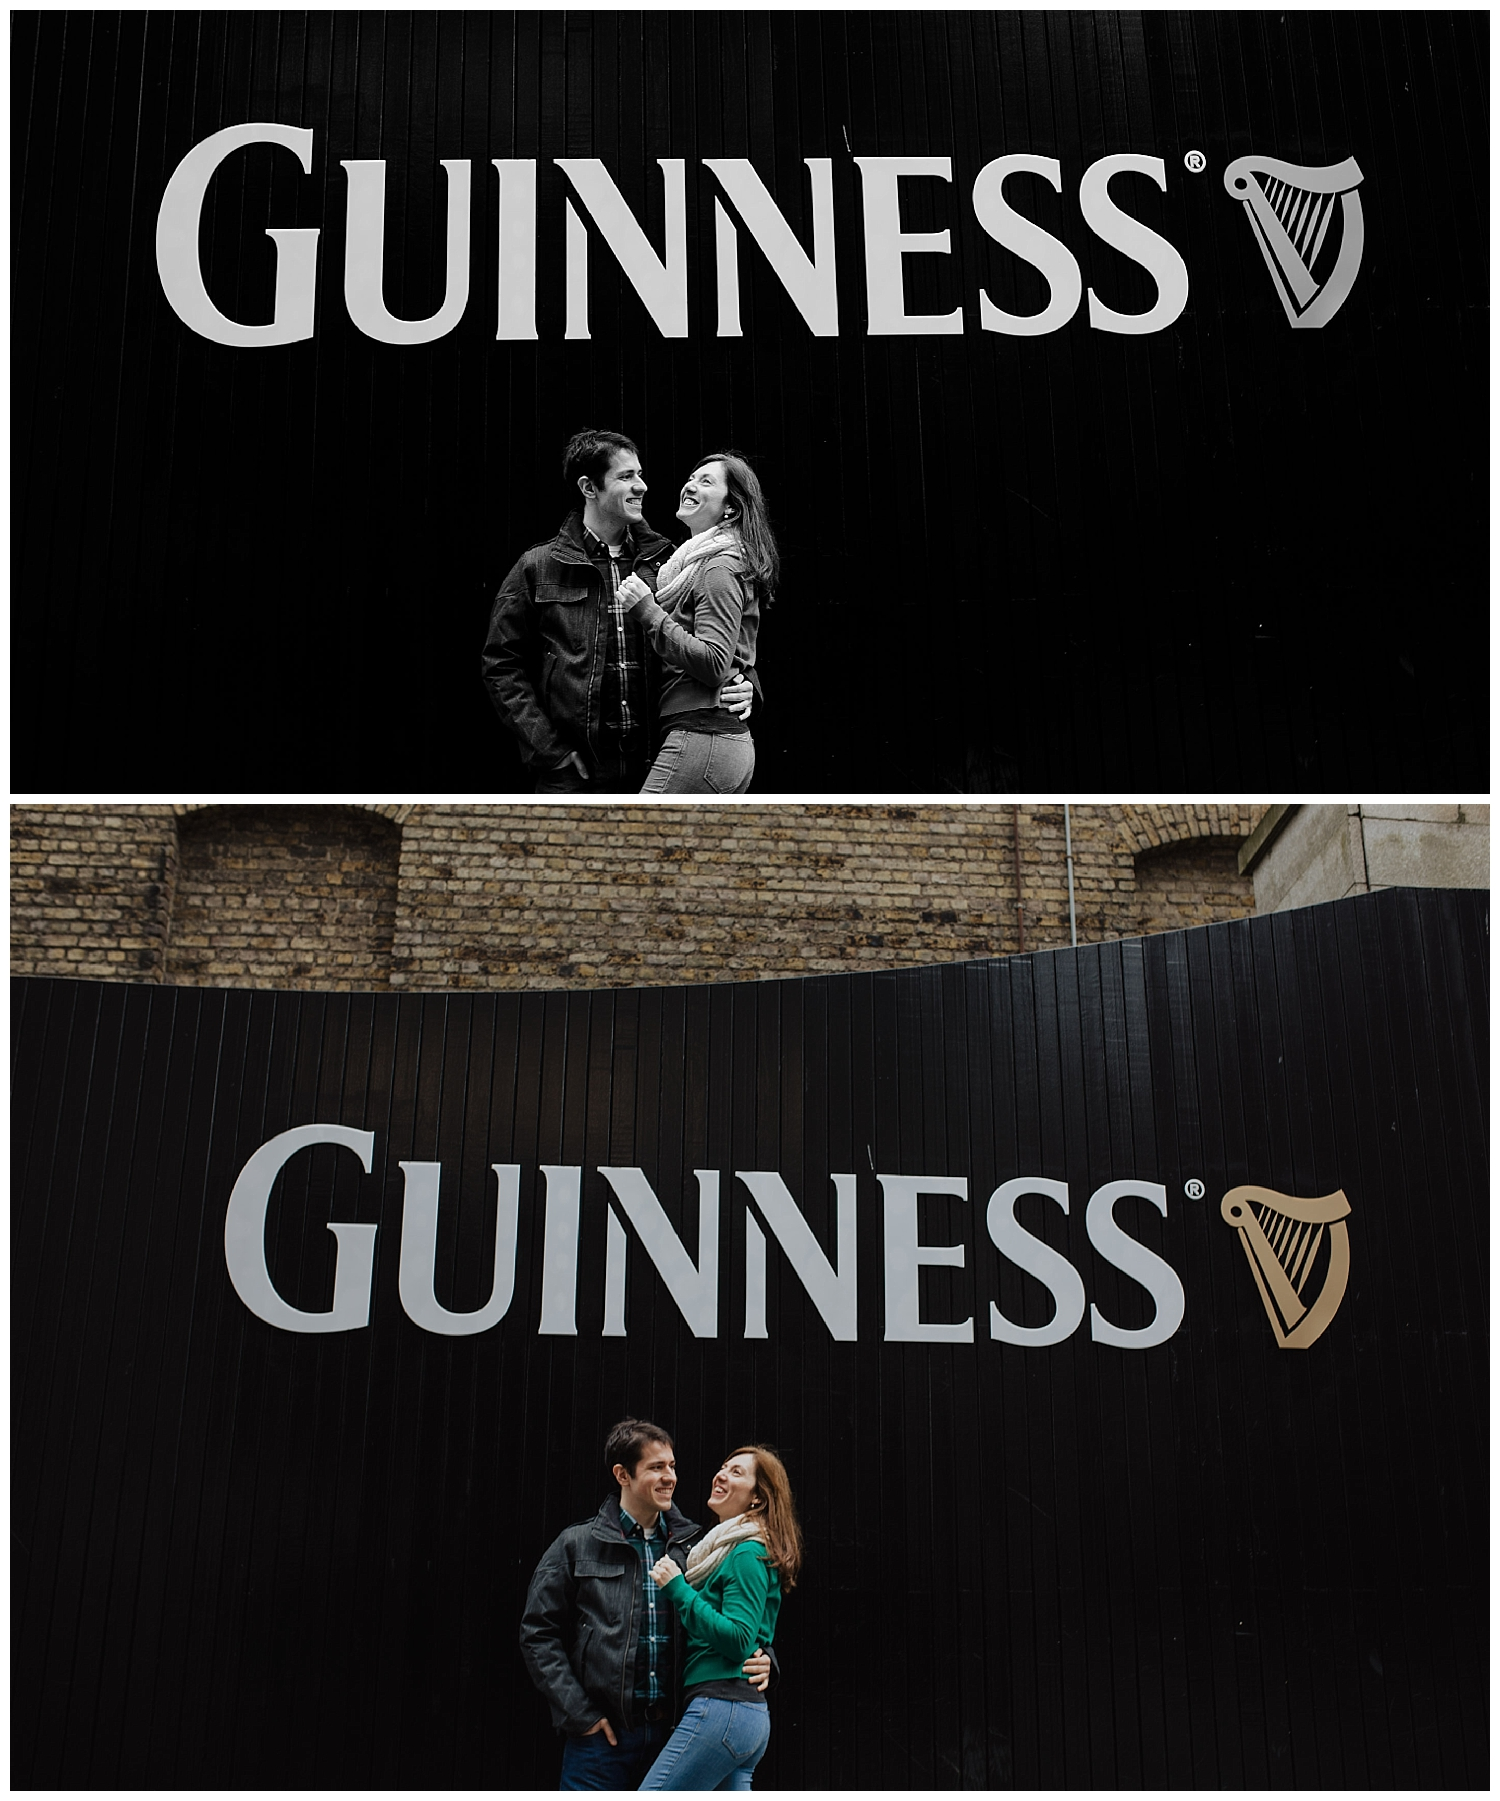 engagement_photos_guiness_storehouse_dublin_ireland_livia_figueiredo_53.jpg